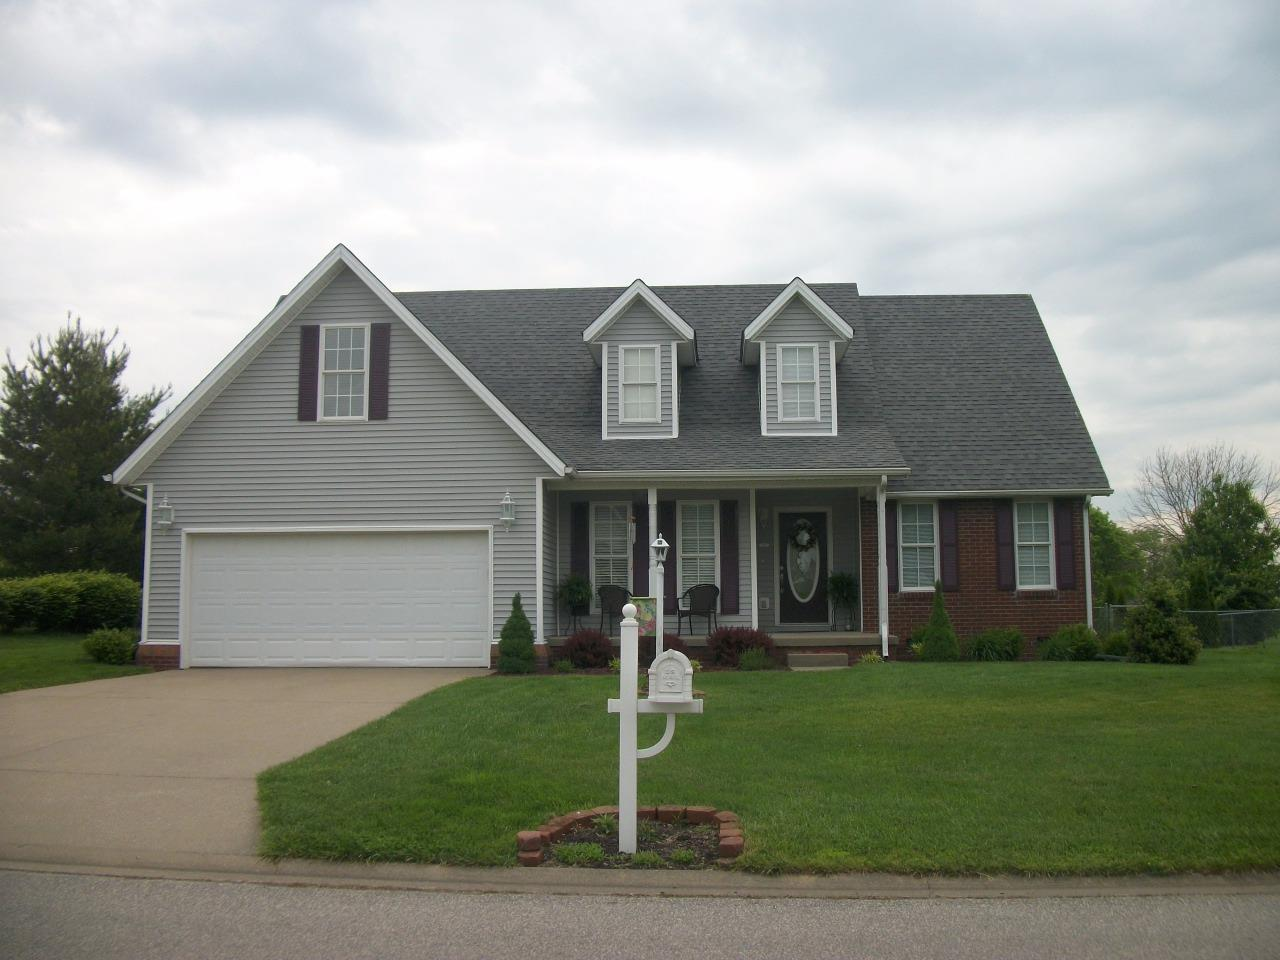 231 Shelton Way, Mt Sterling, KY 40353